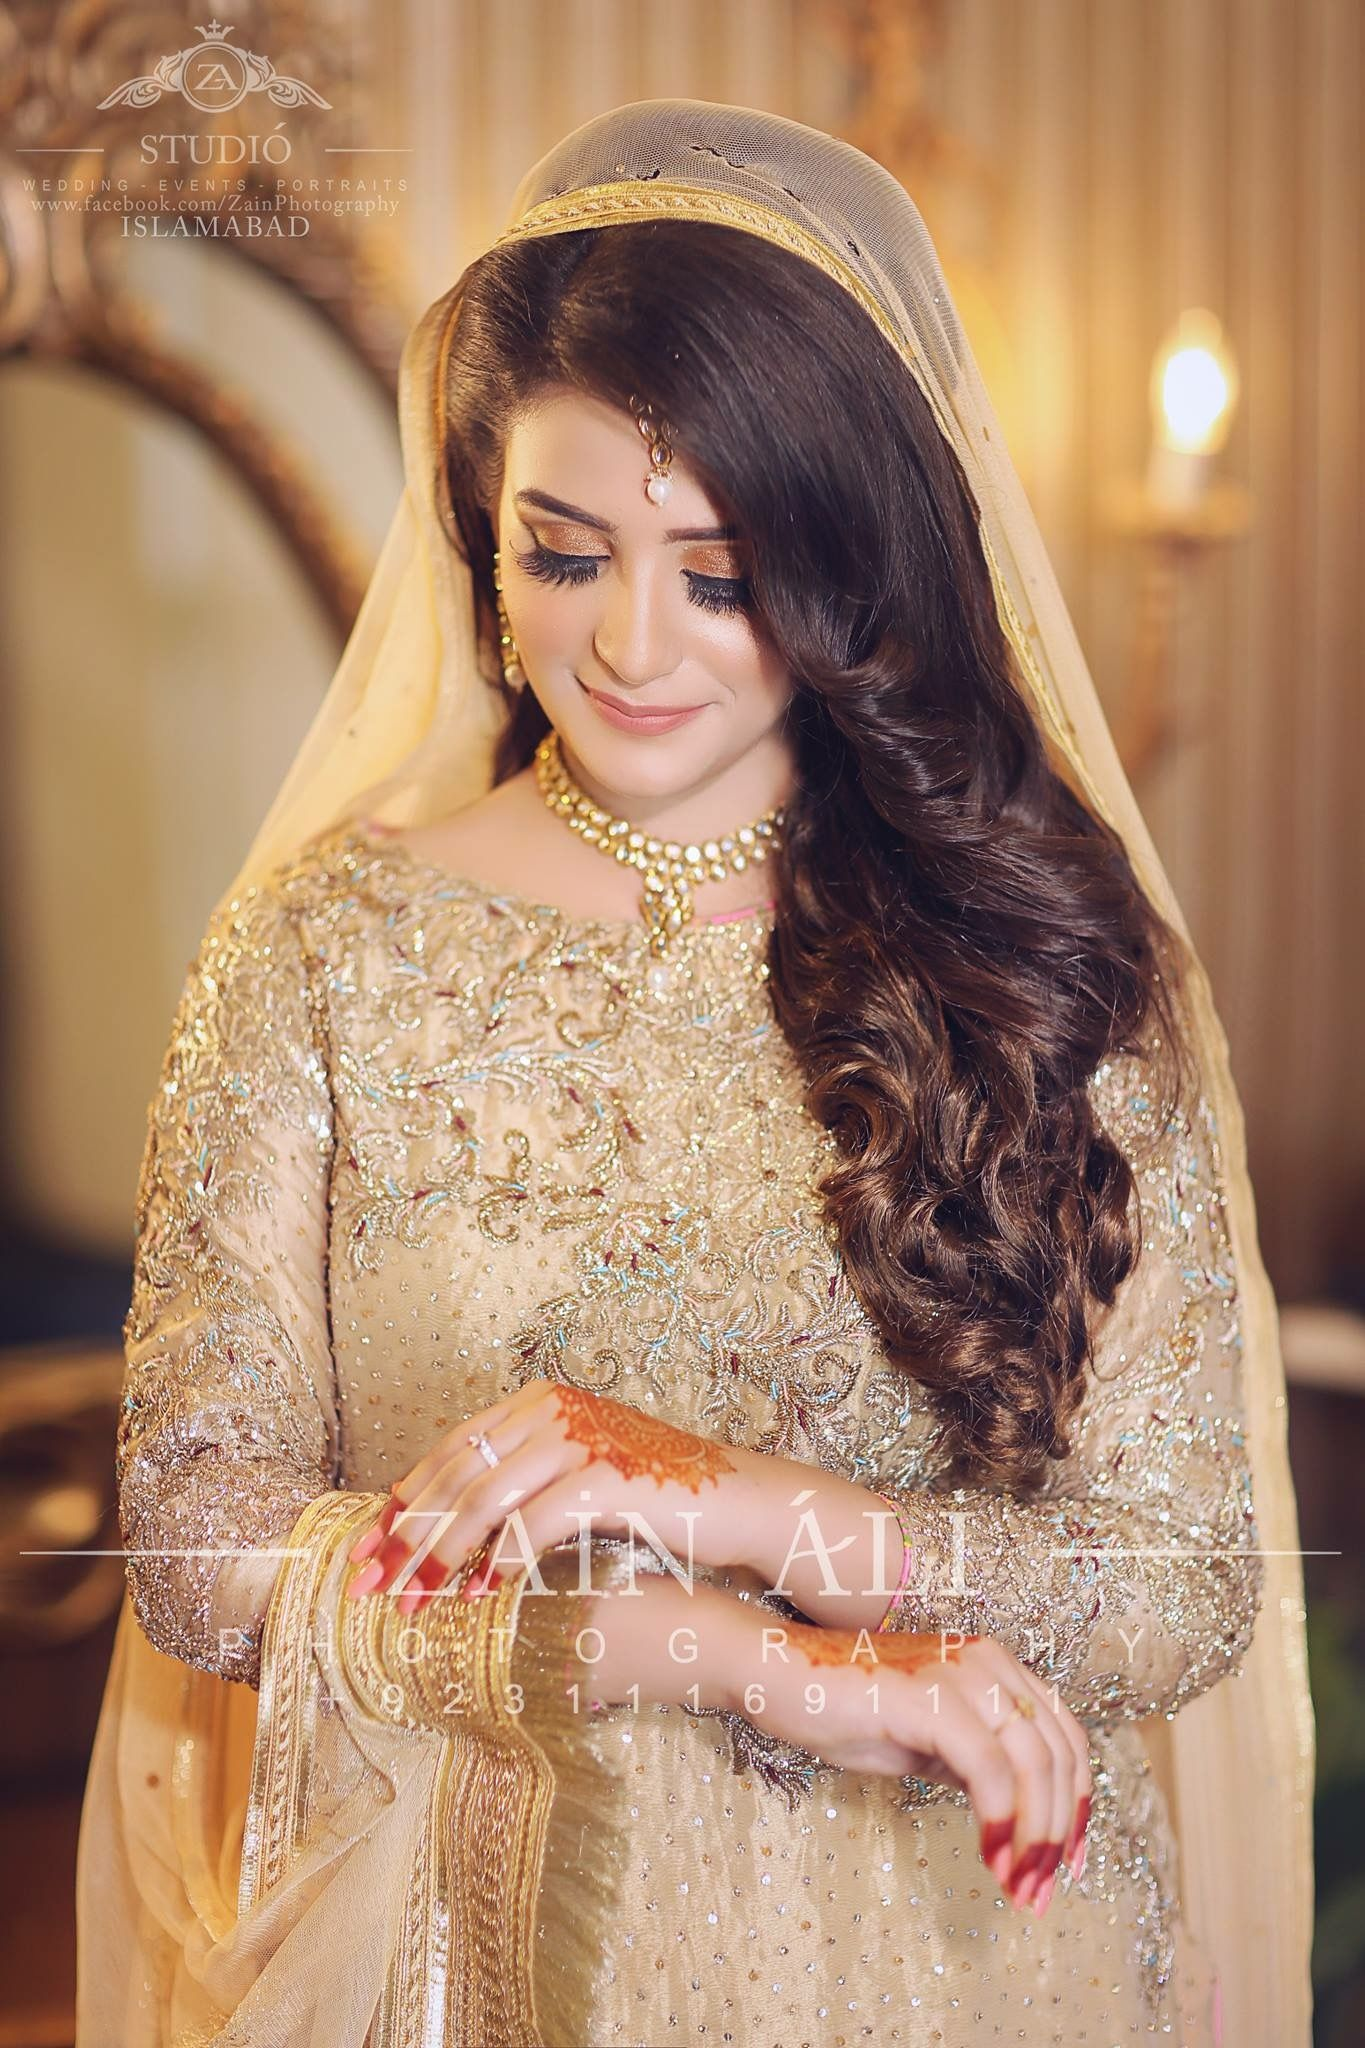 pin by nimra ahmed on ❤❤girl's styles❤❤ in 2019